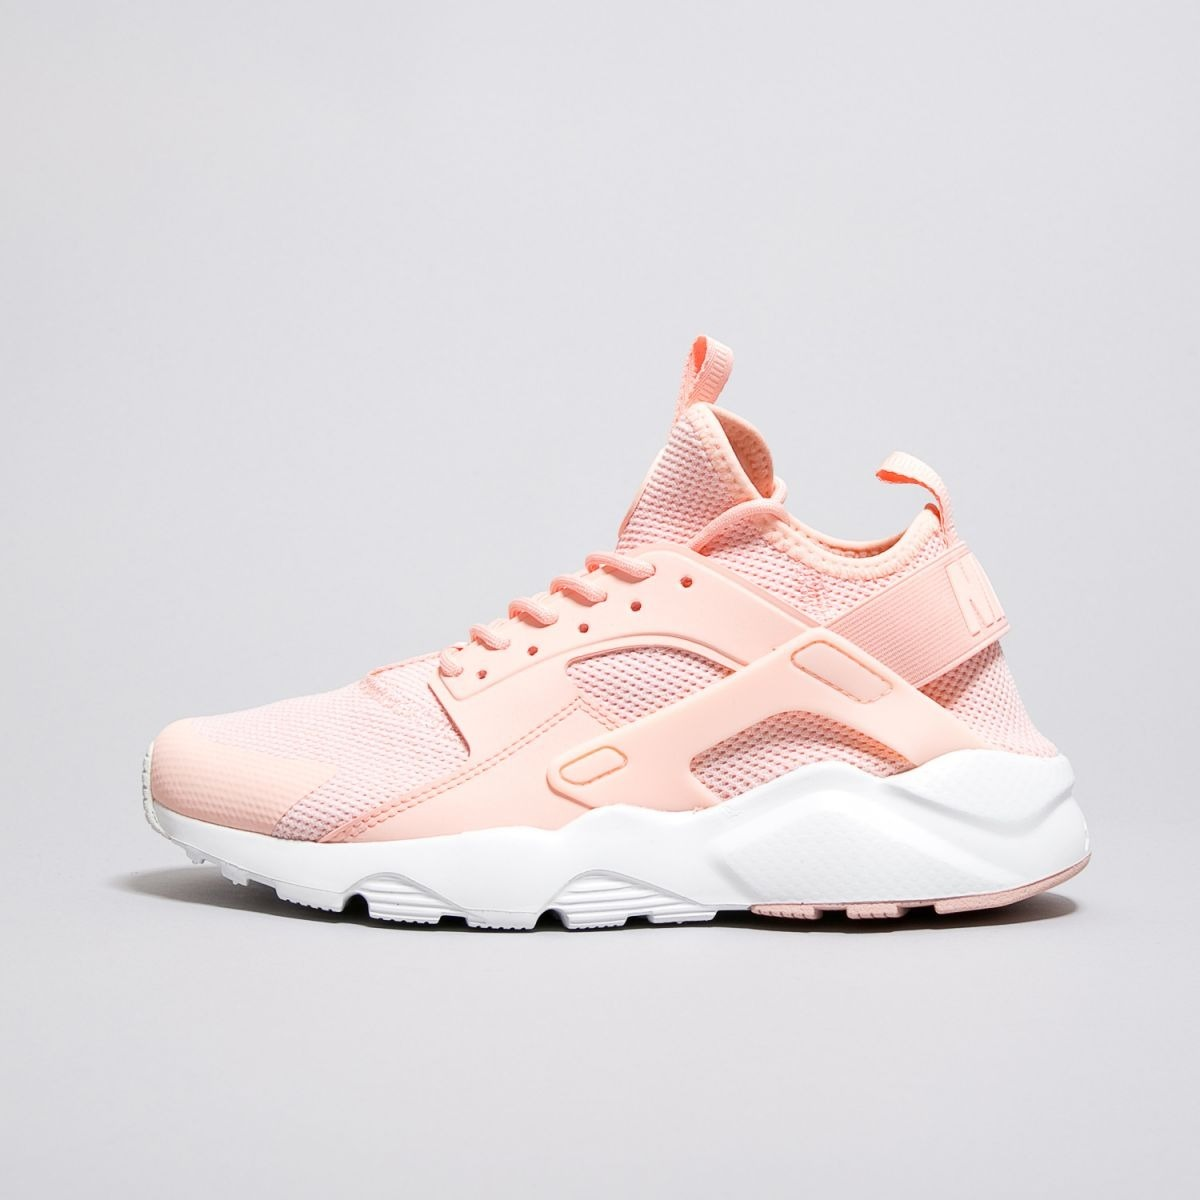 2733503c72d63 ... cheap zapatillas nike air huarache ultra rosa dama. cargando zoom.  afba7 8a9f0